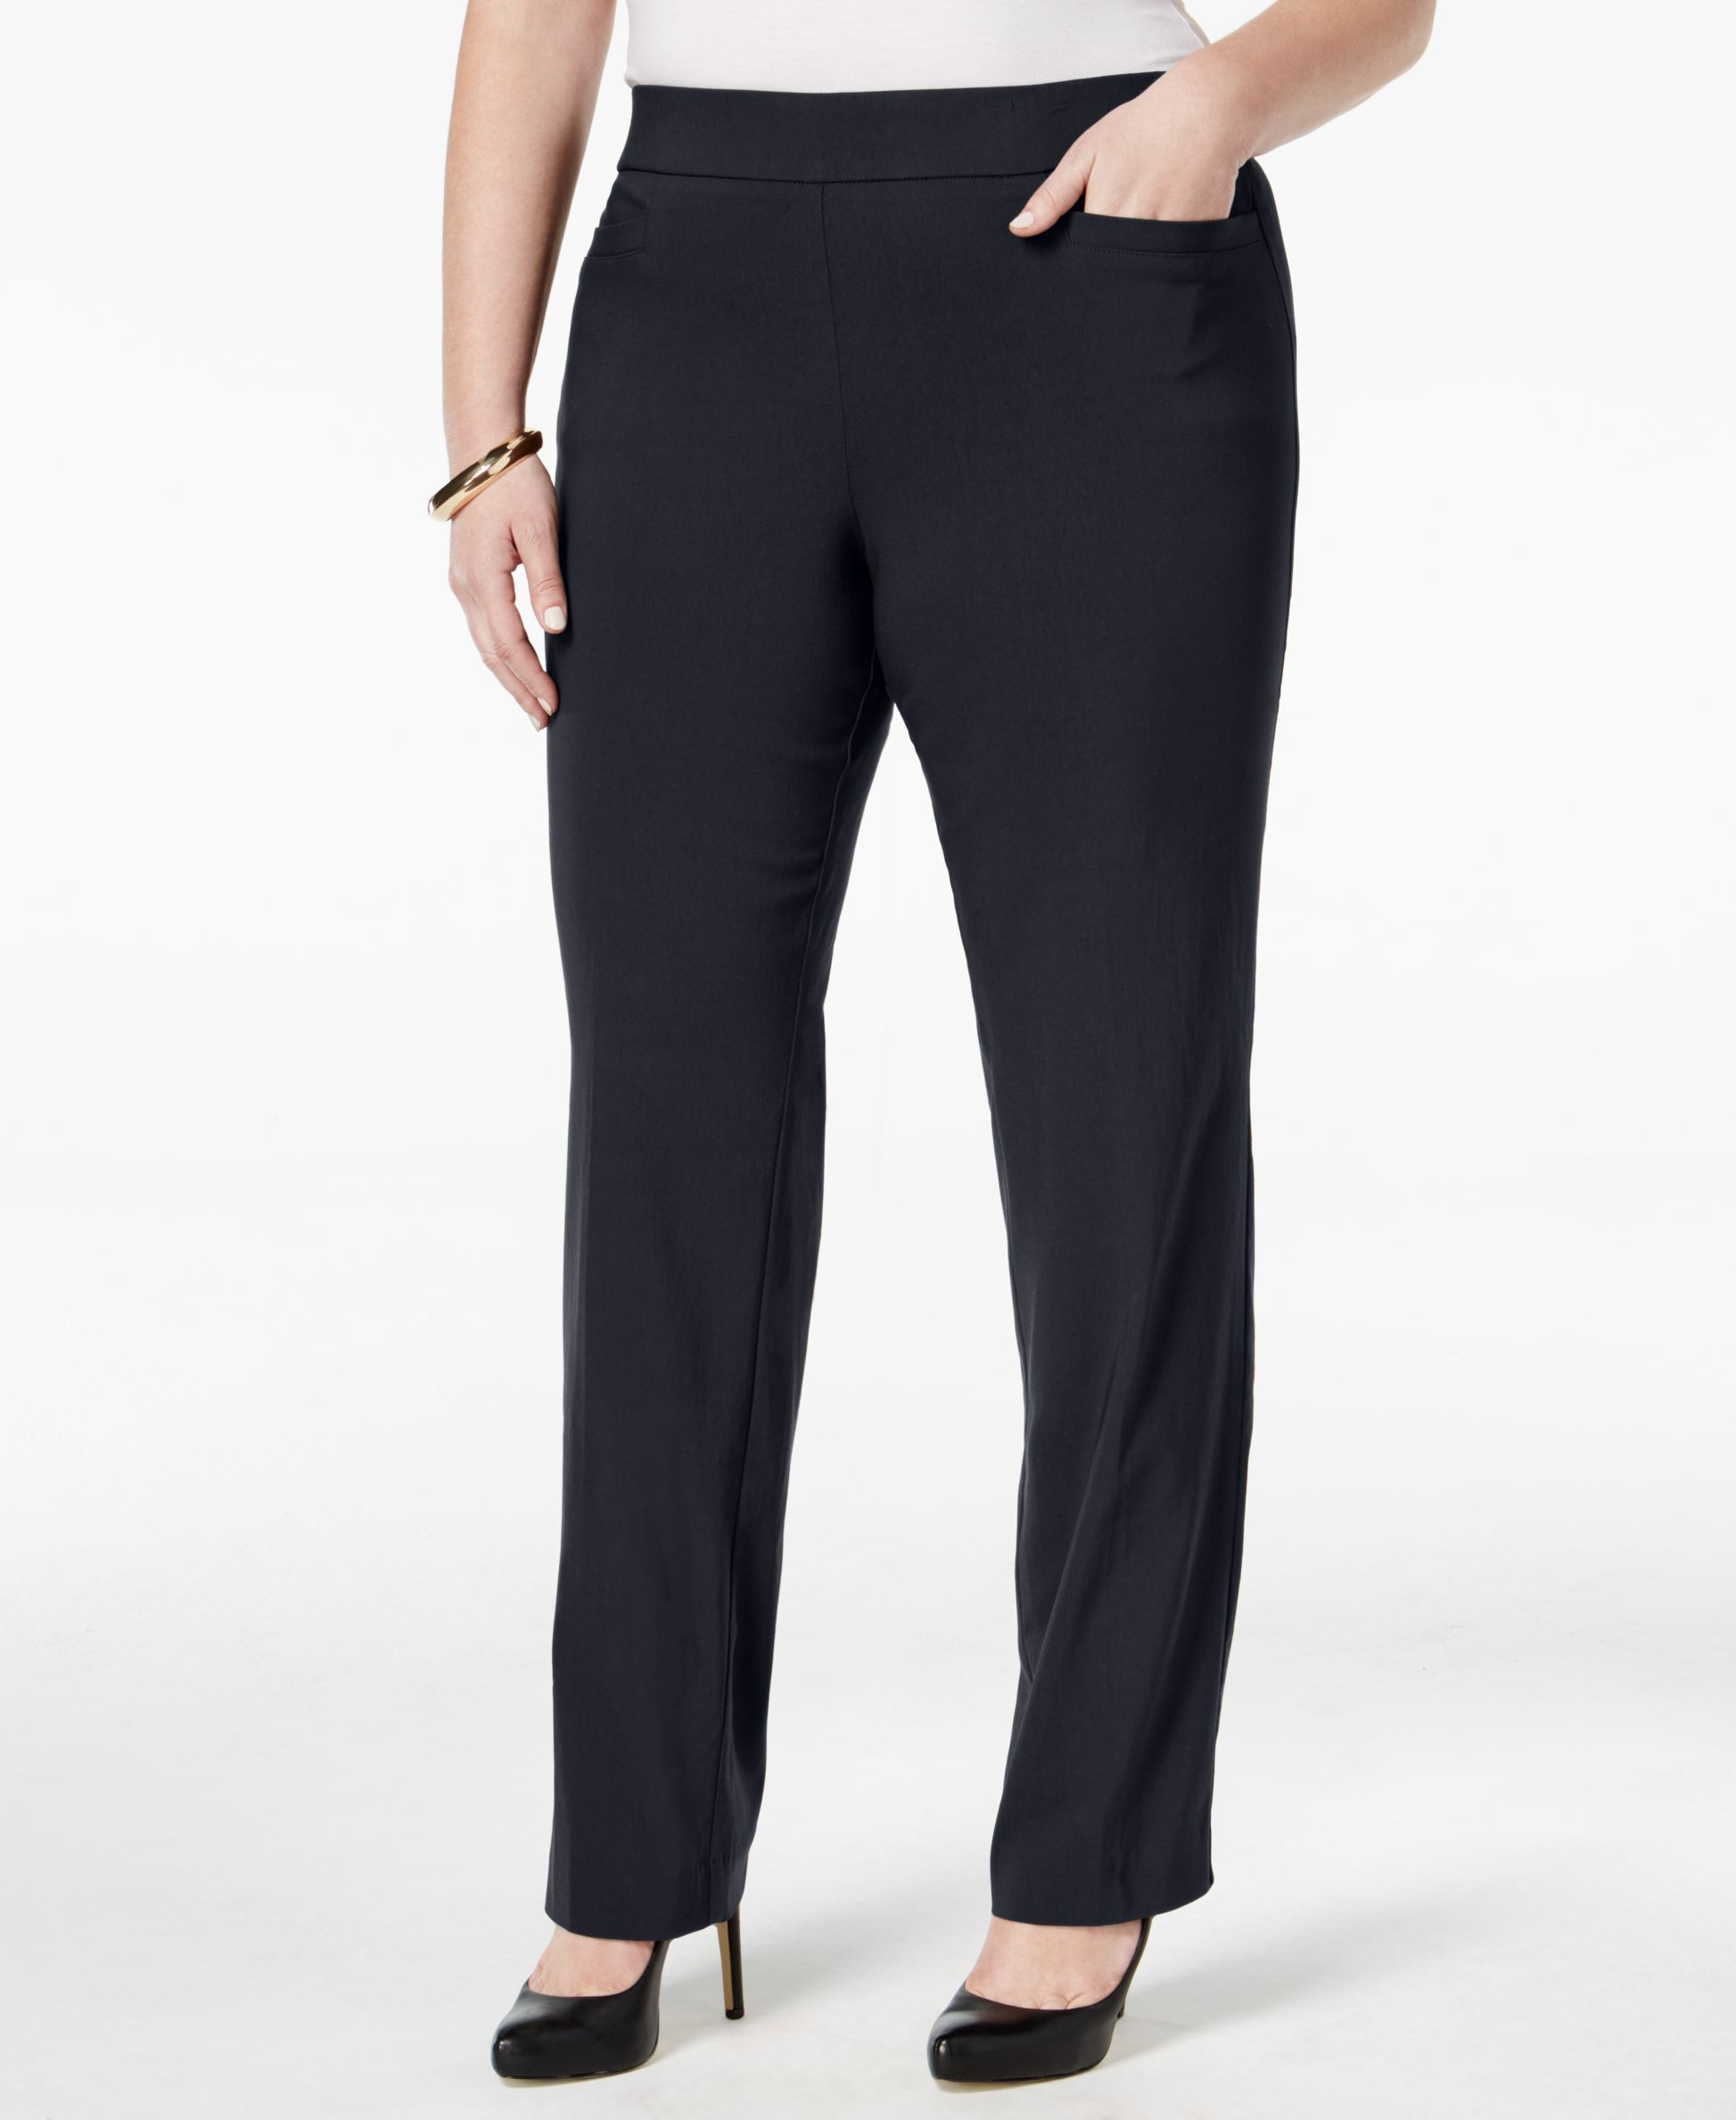 Jm Collection Plus Size Pull-On Bootcut Pants, Only at Macy's